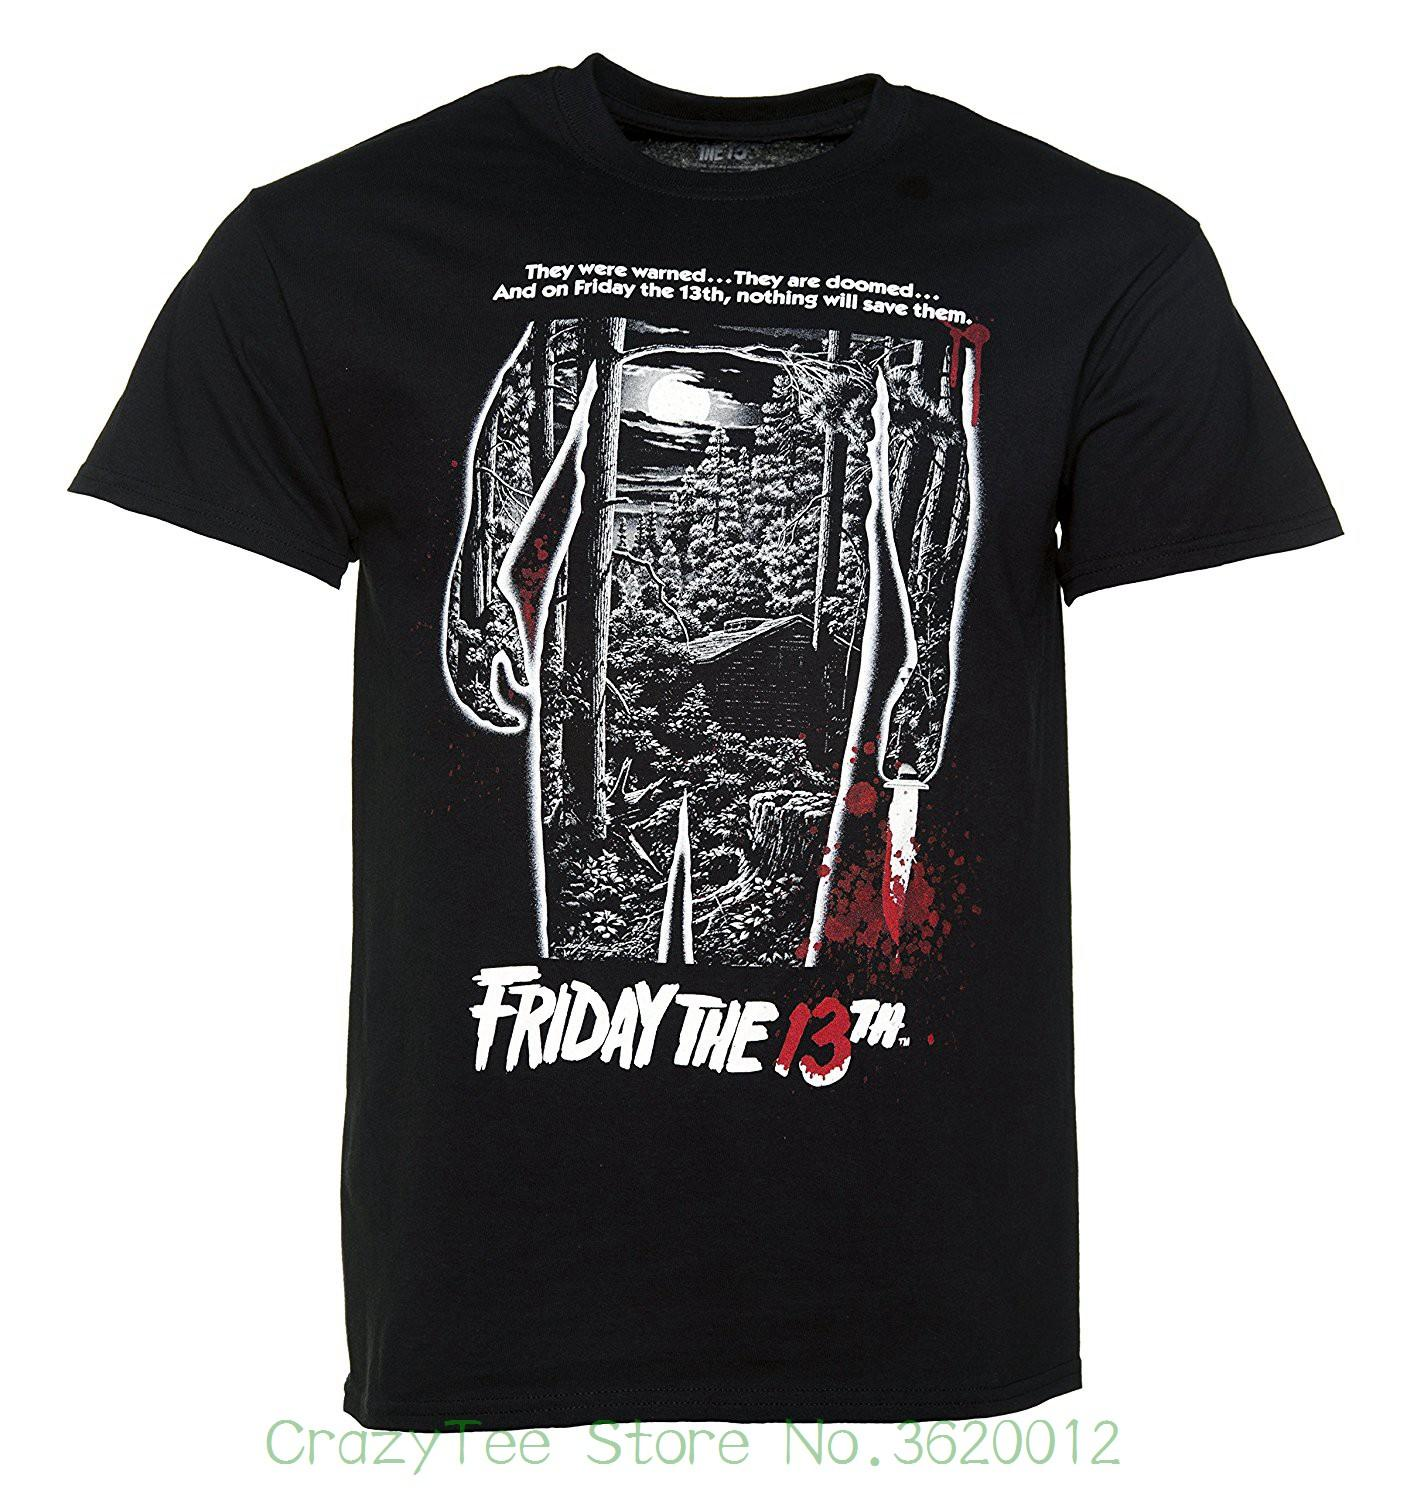 2018 Summer New Brand T Shirt Men Hip Hop Men T-shirt Casual Fitness Mens  Black Friday 13th Bloody Poster T Shirt Online with  17.71 Piece on ... ff1fb02e52